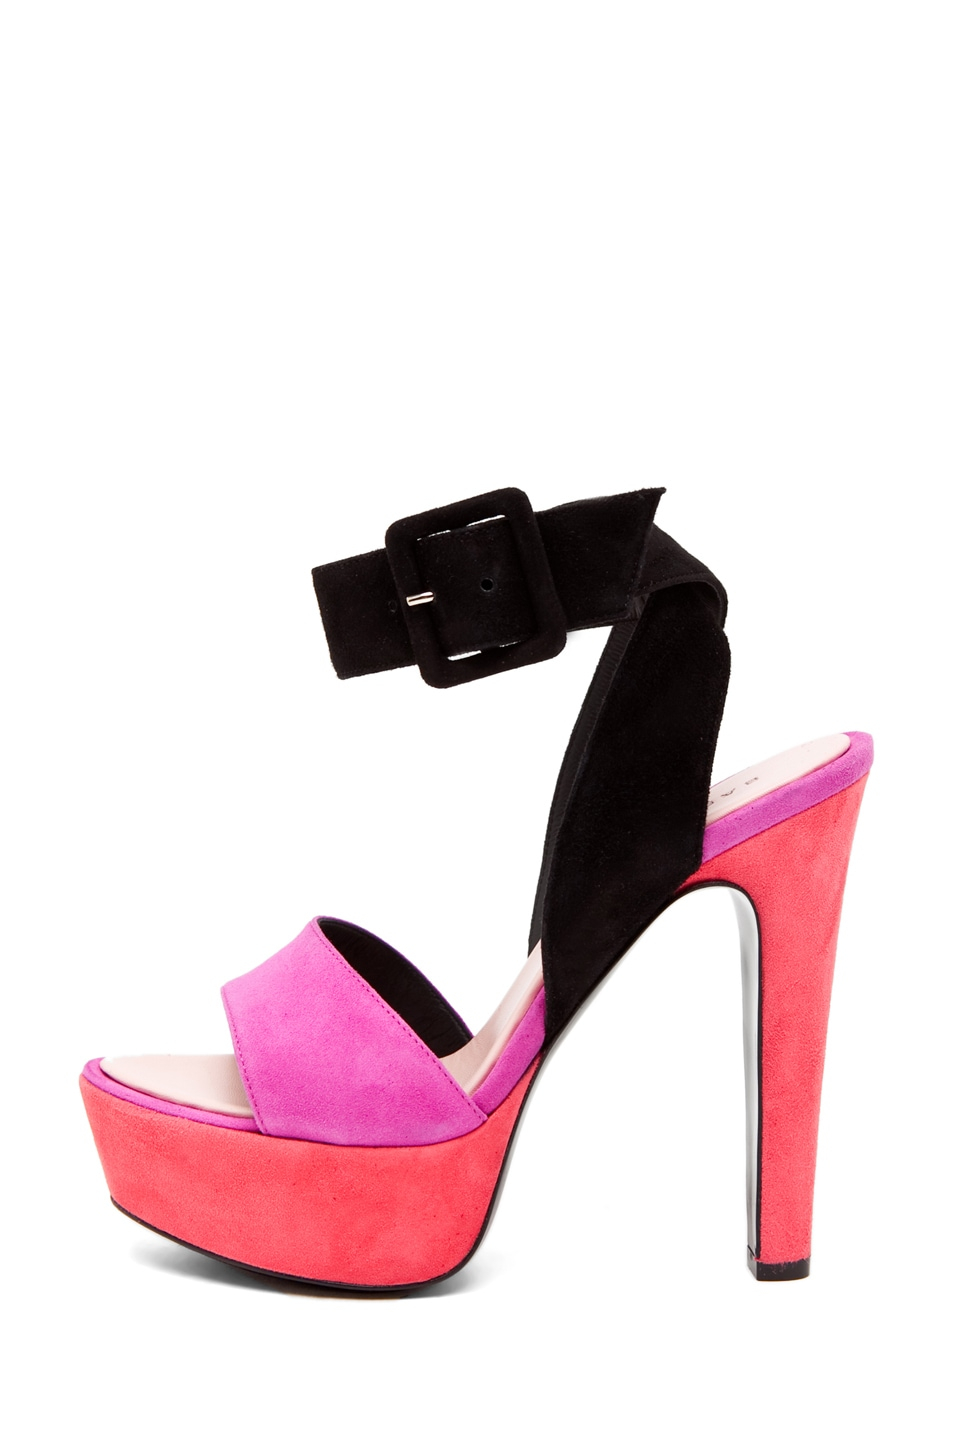 Image 2 of Barbara Bui Ankle Strap Heel in Pink/Black